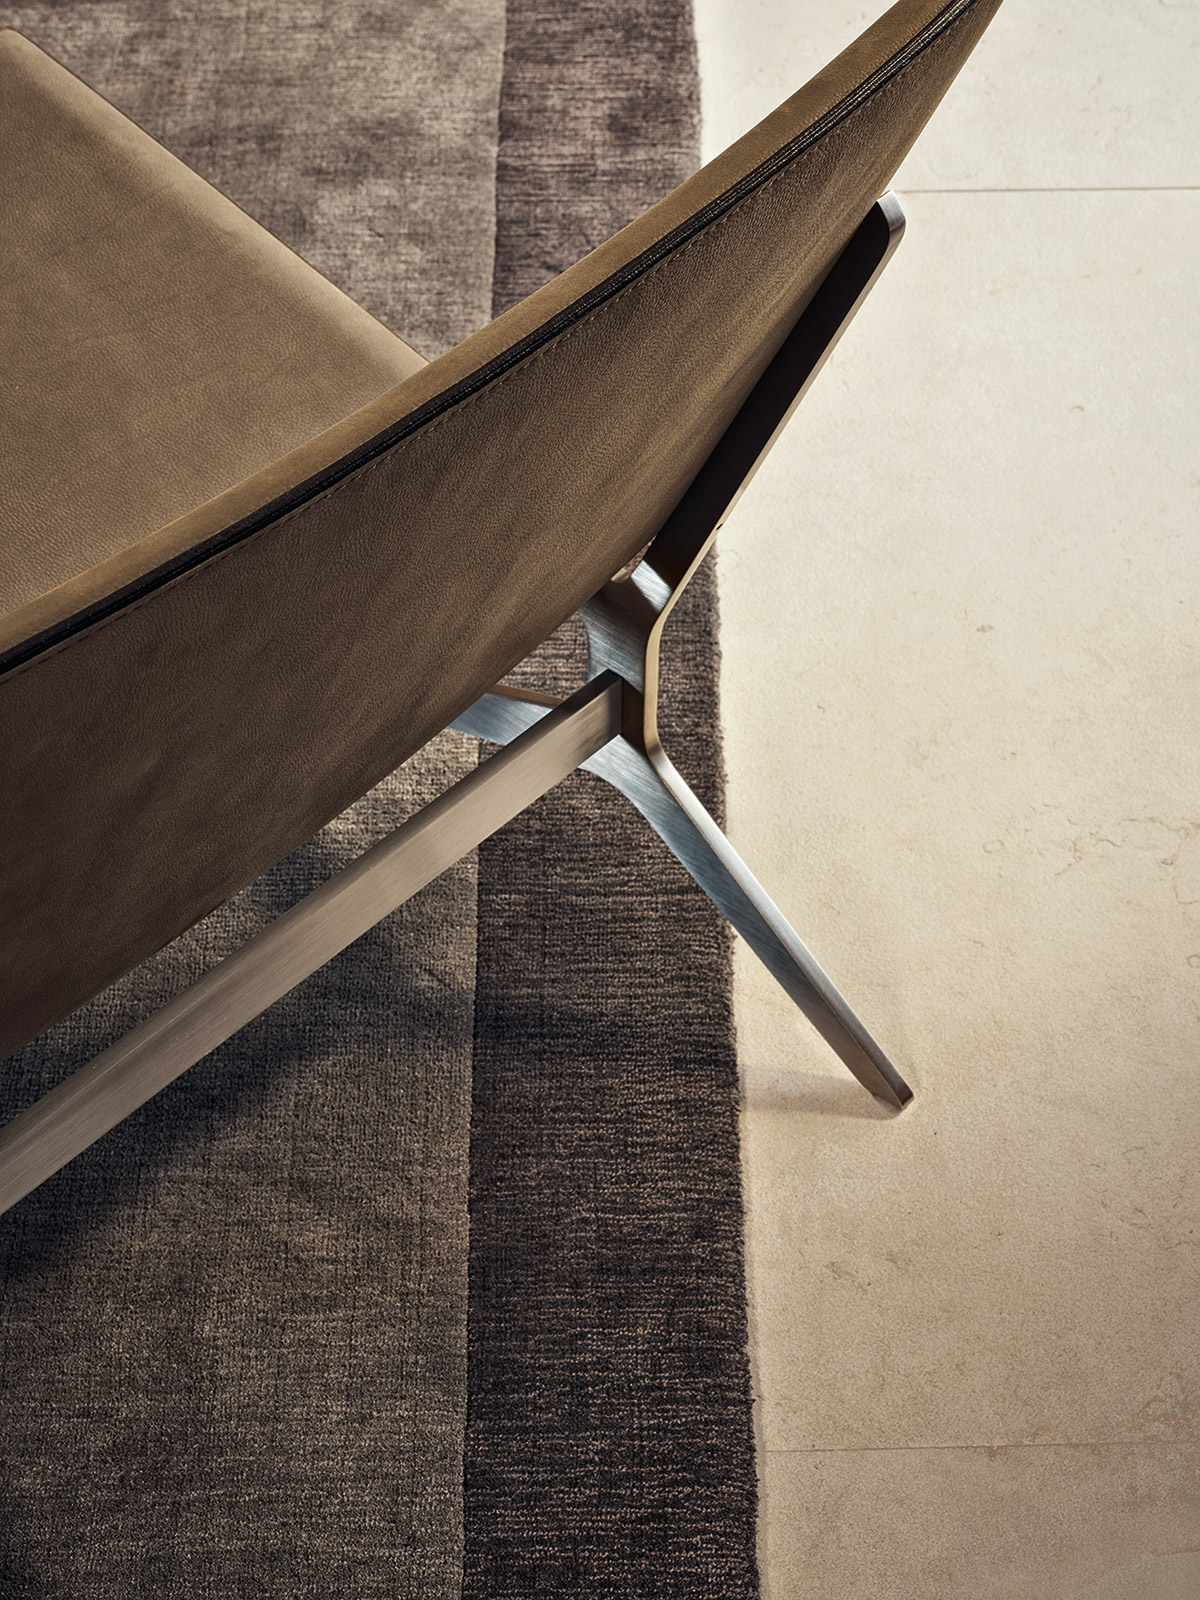 Detail of Kay Lounge armchair by Poliform